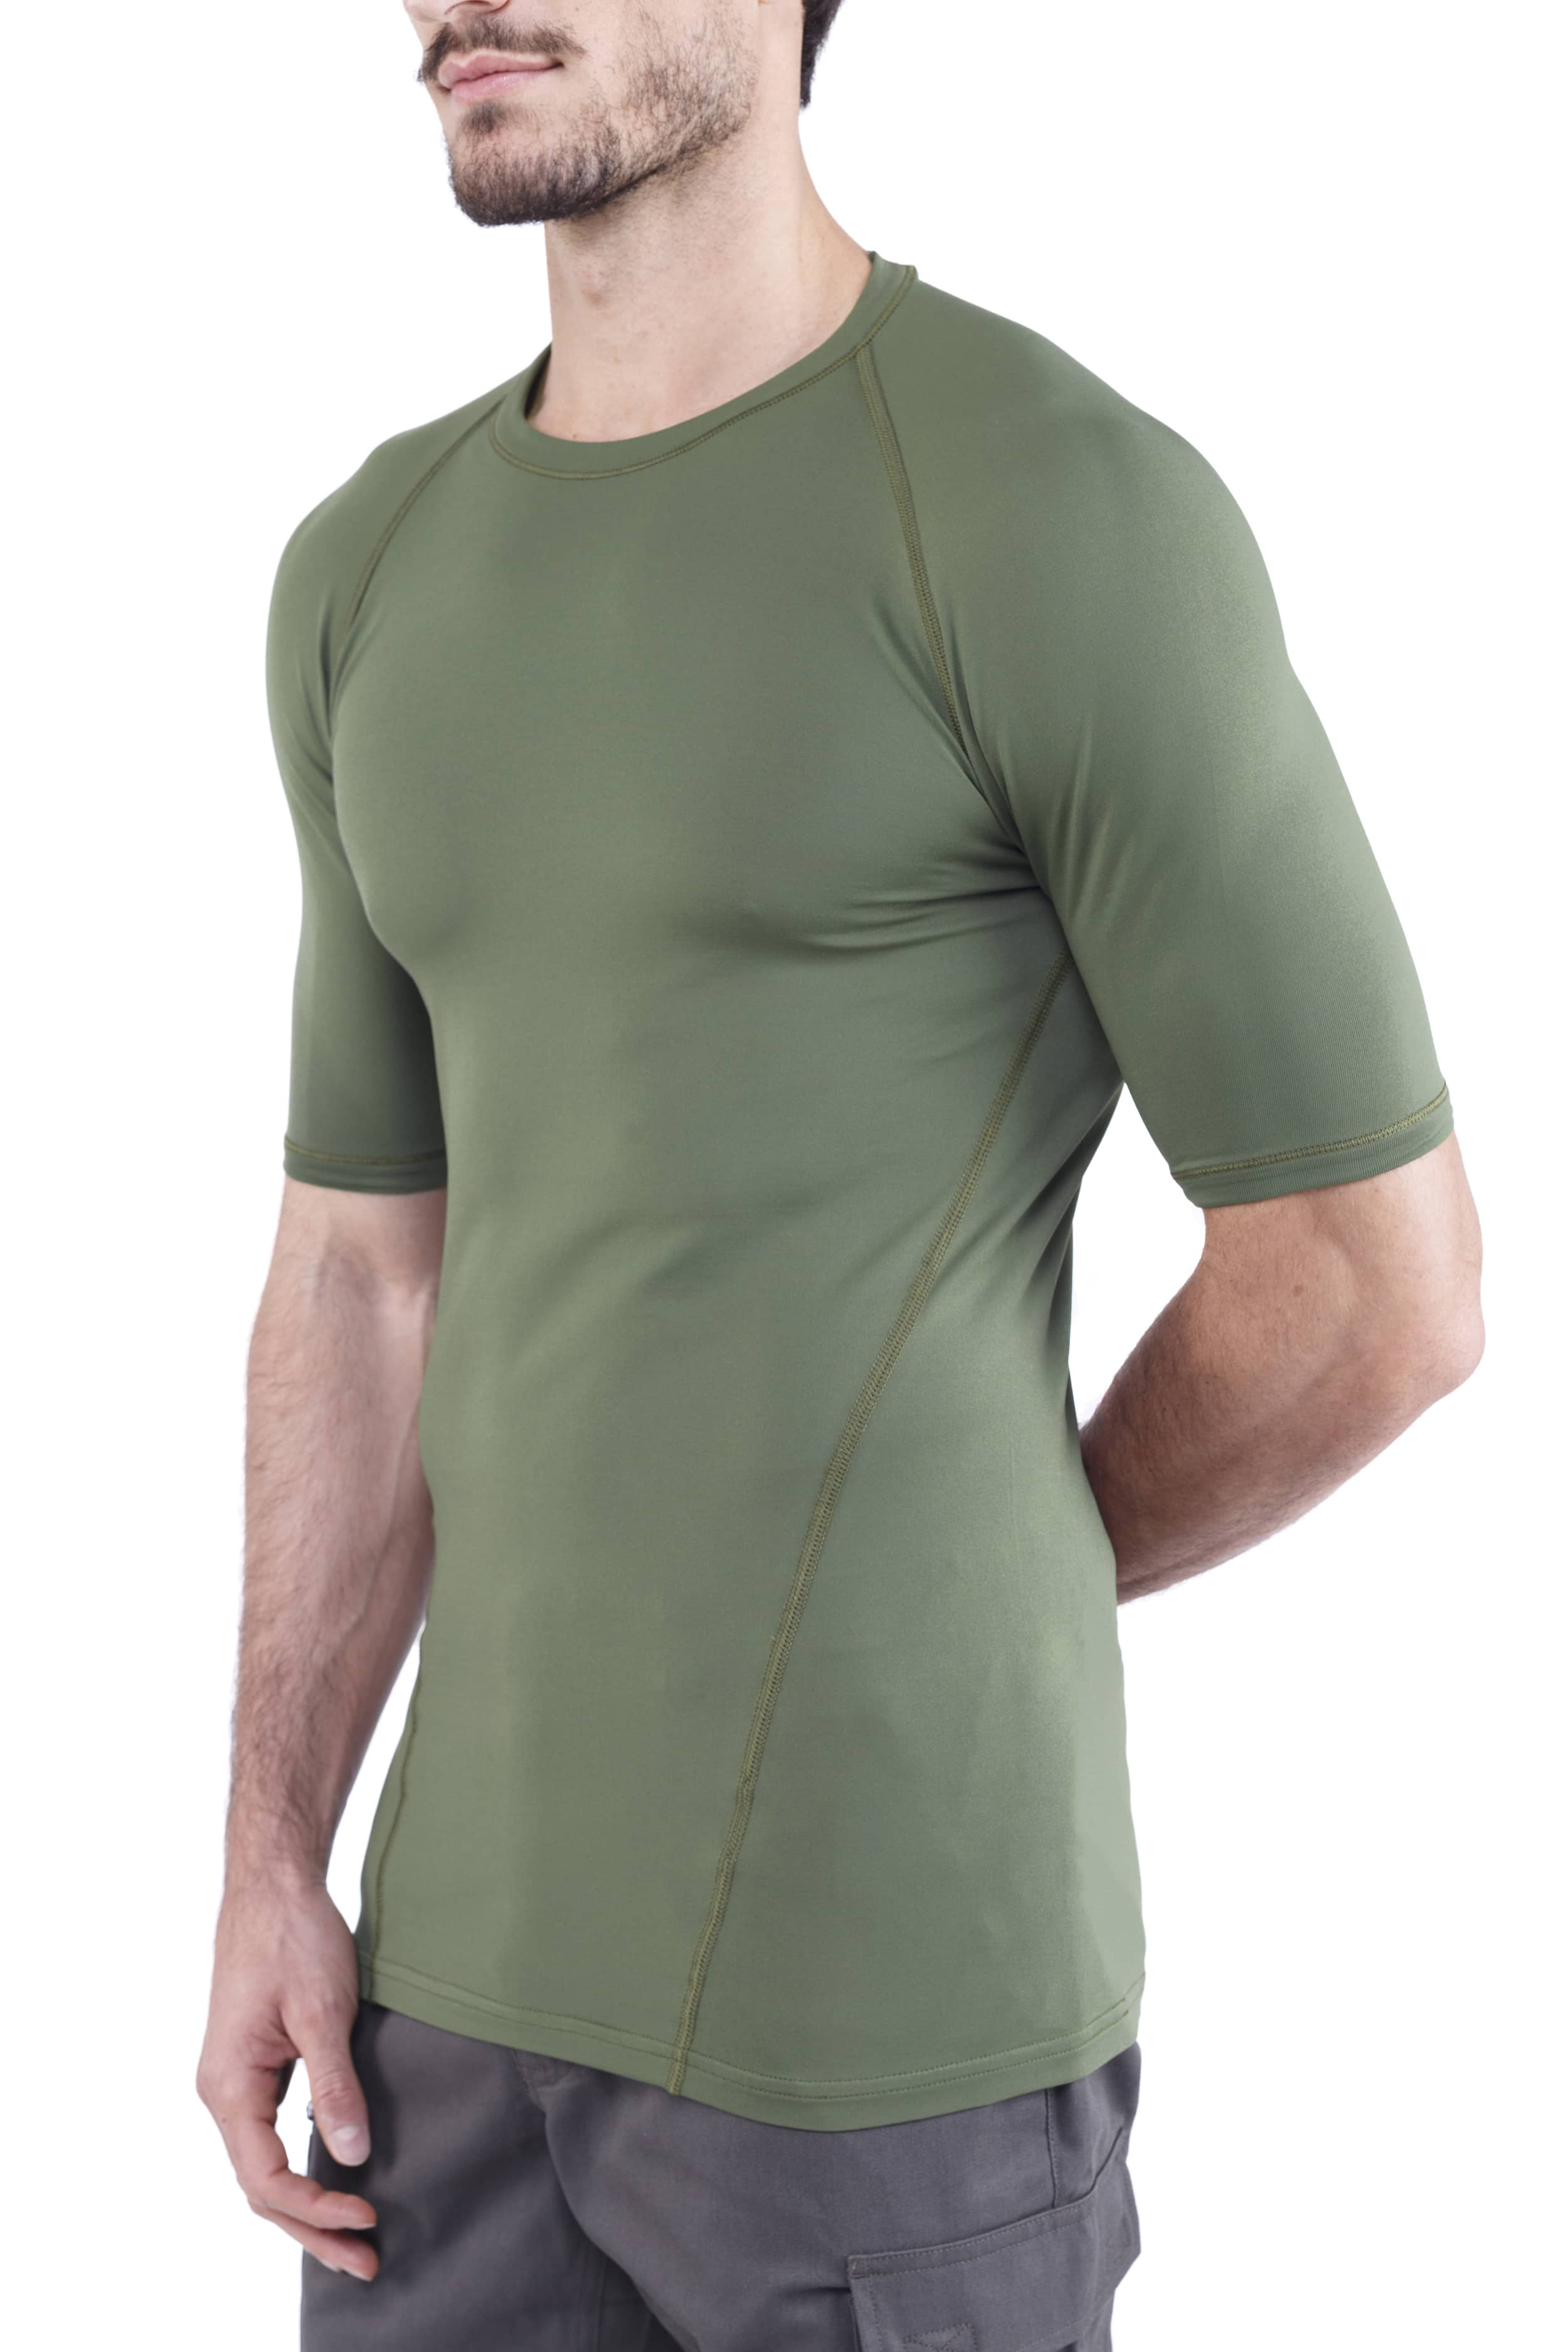 ARMY COMBAT T-SHIRT